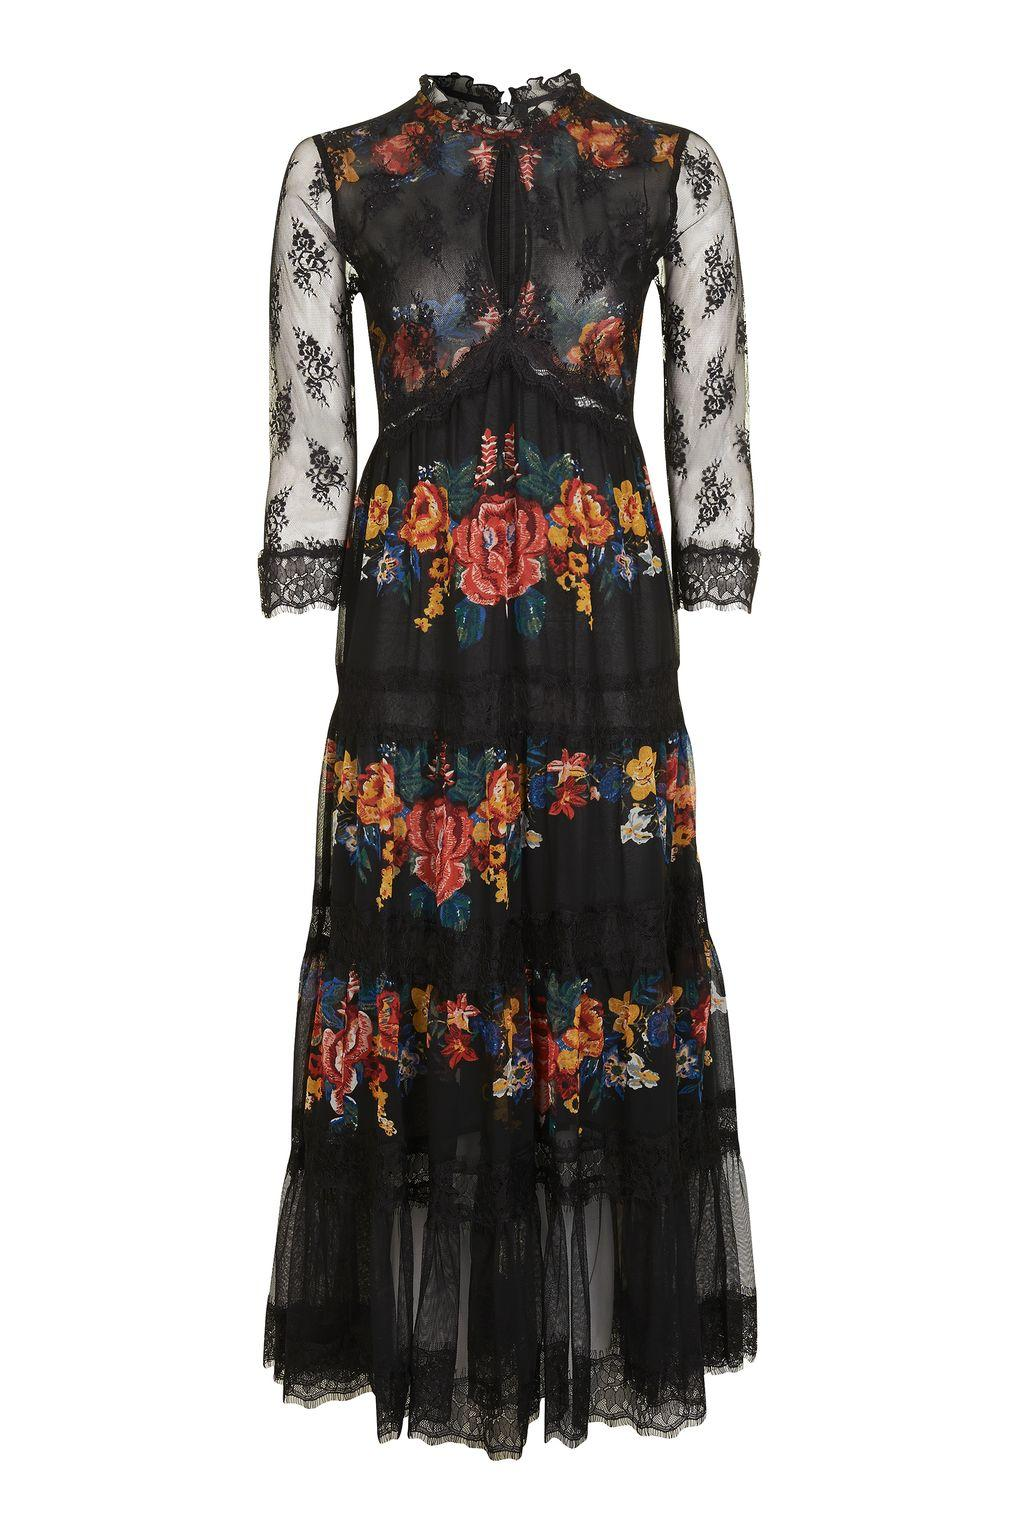 Topshop Lace Tier Floral Midi Dress In Black Lyst